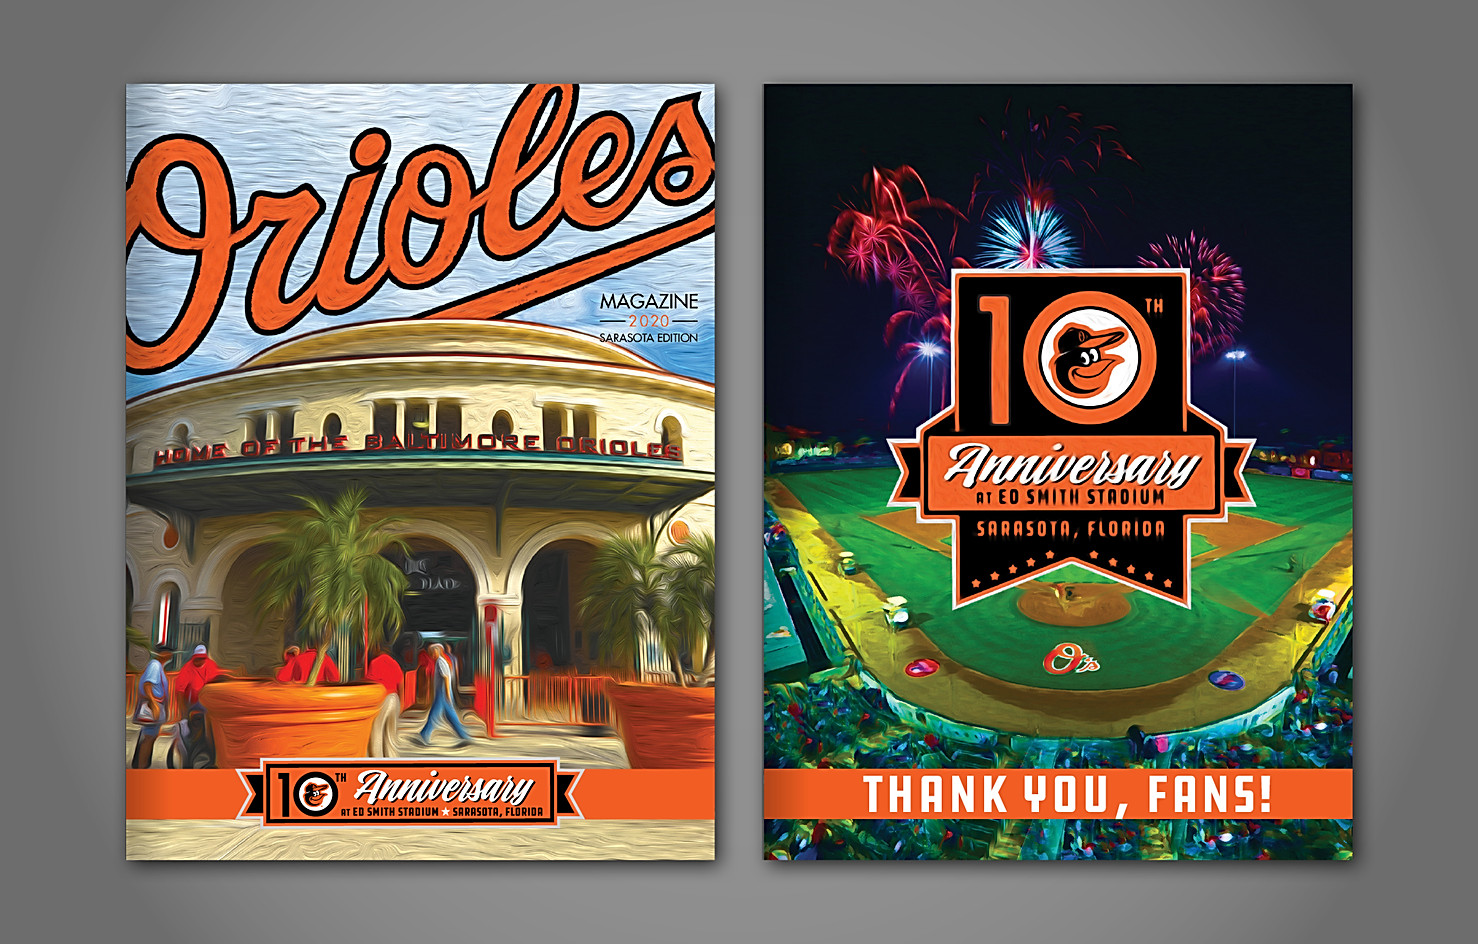 Orioles Magazine Spring Training Edition 2020 Front & Back Covers